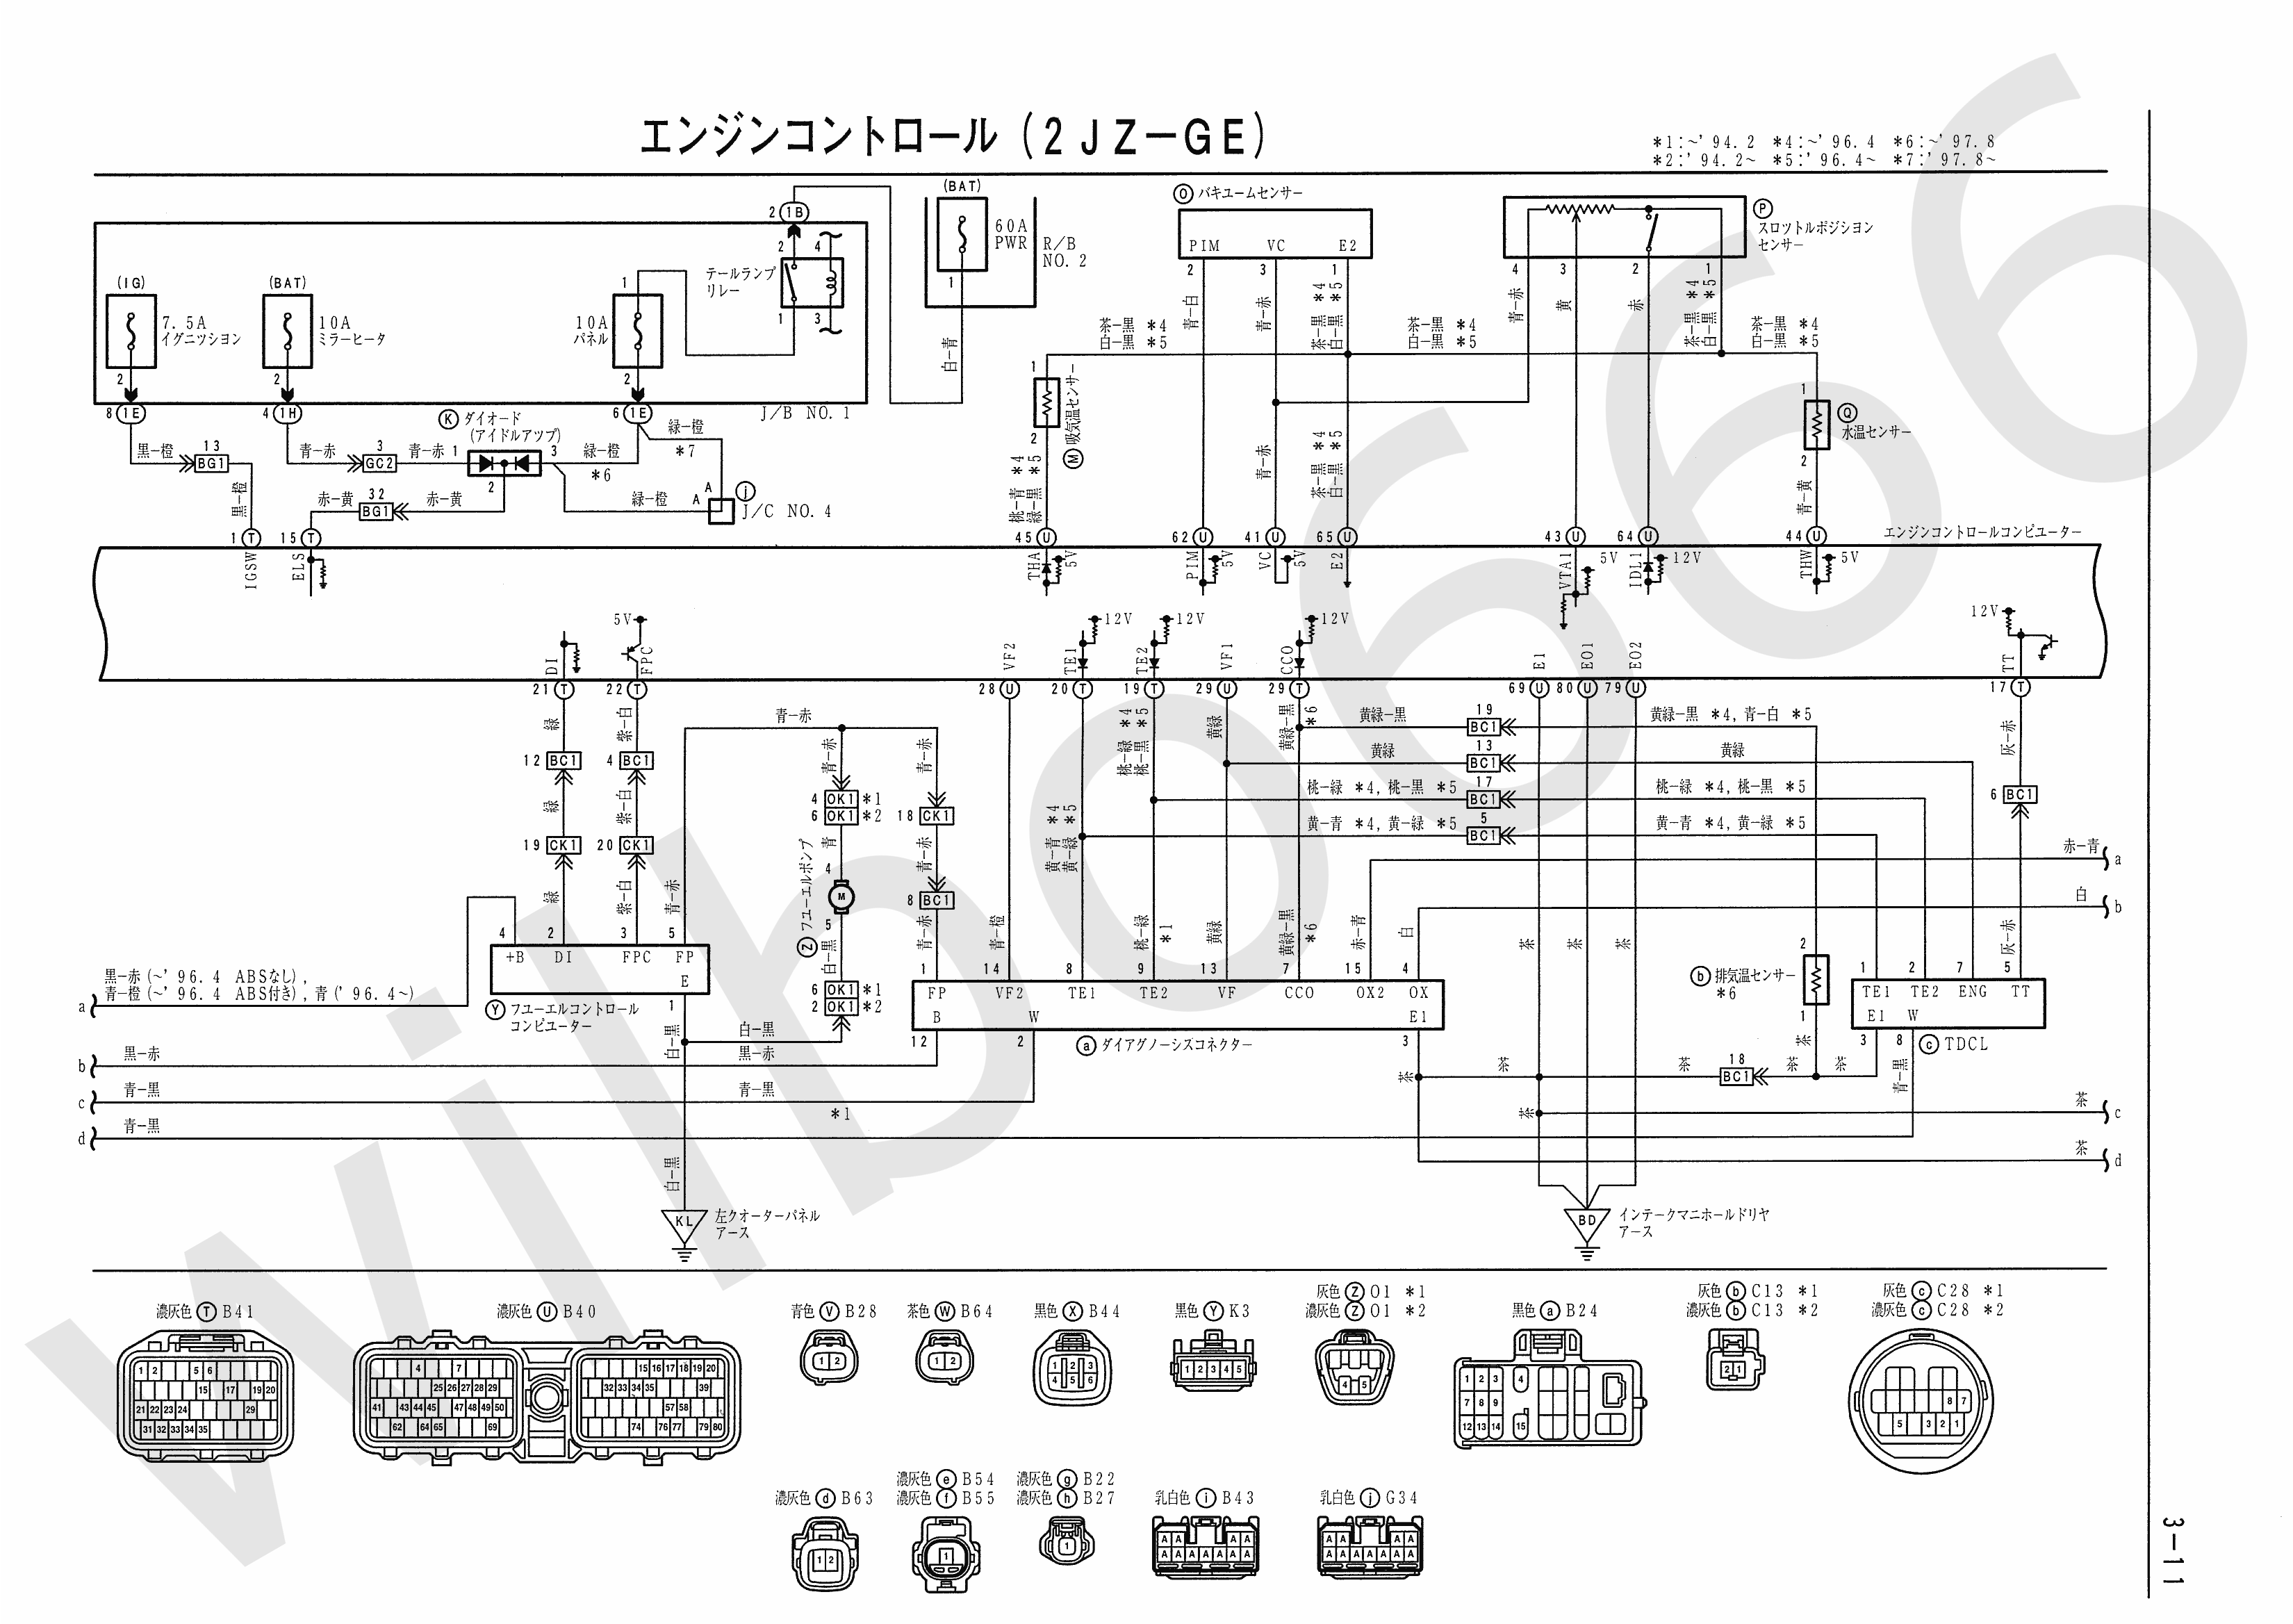 JZA80 Electrical Wiring Diagram 6742505 3 11?ssl=1 toyota ipsum wiring diagram toyota wiring diagrams instruction jzx100 wiring diagram at highcare.asia